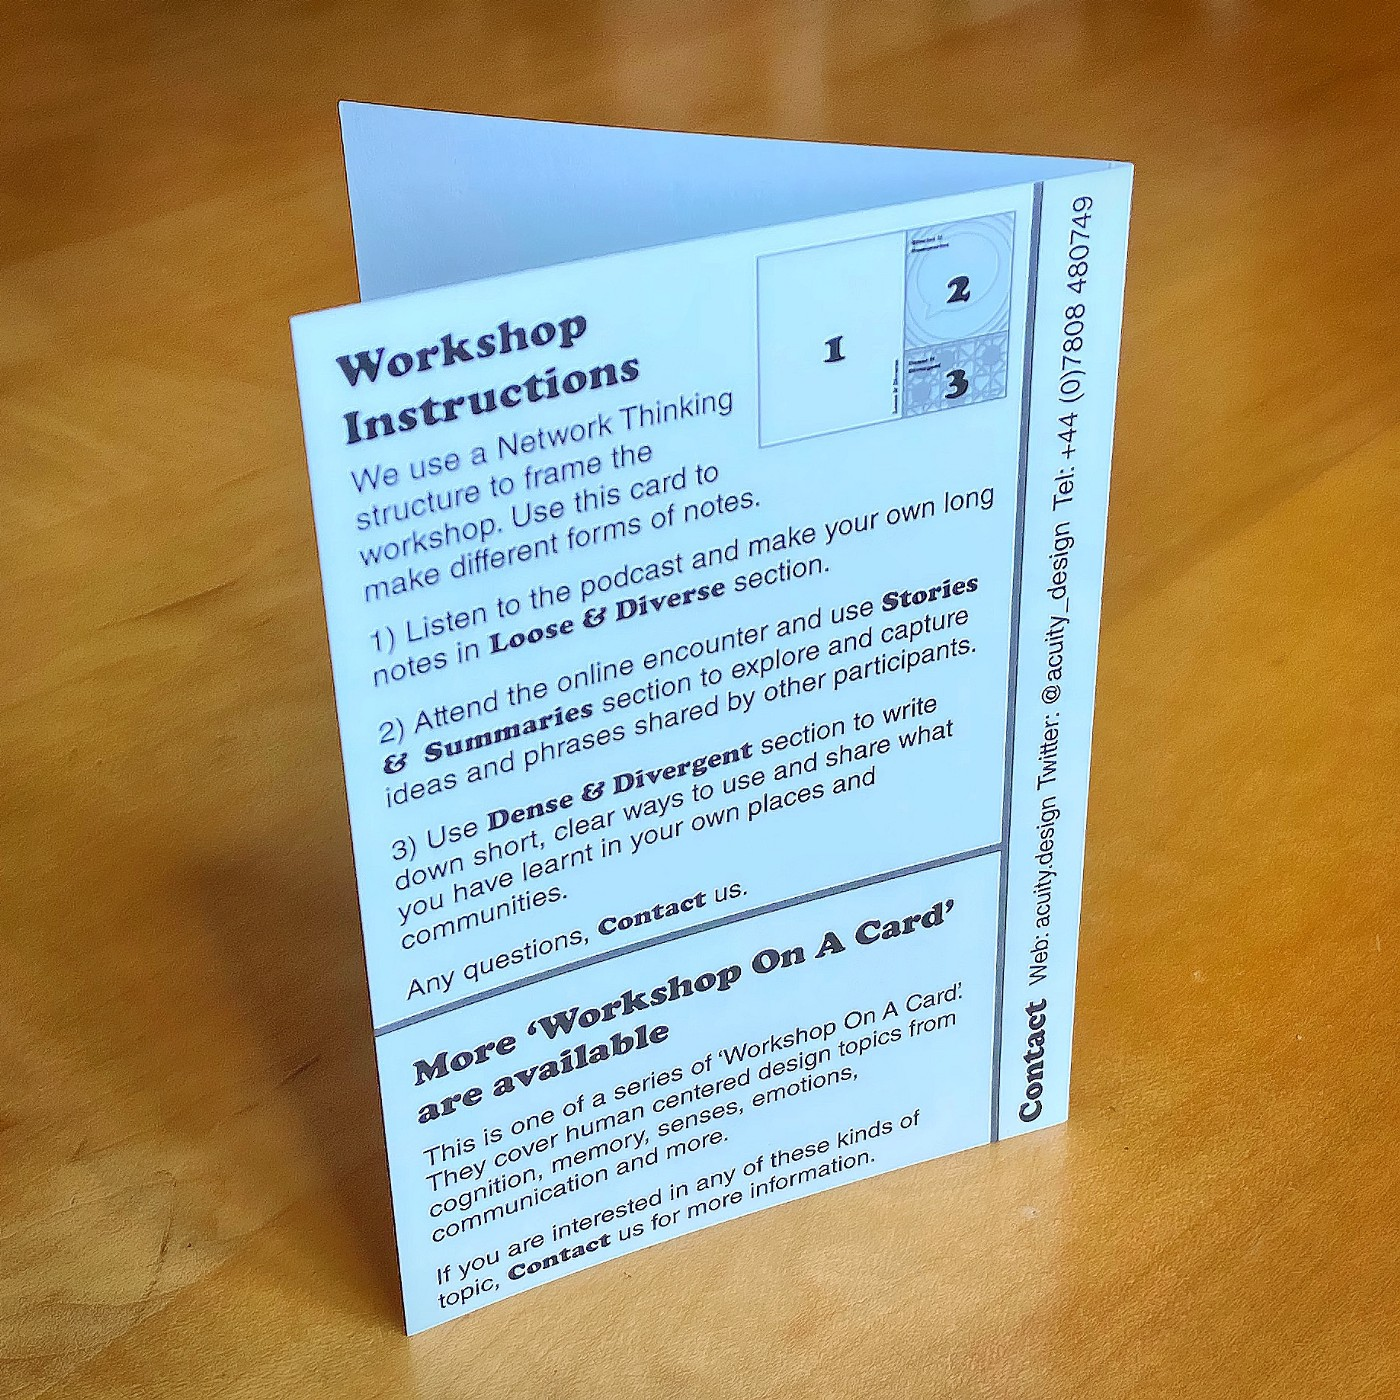 Back of all the cards is the workshop instructions using Network Thinking model